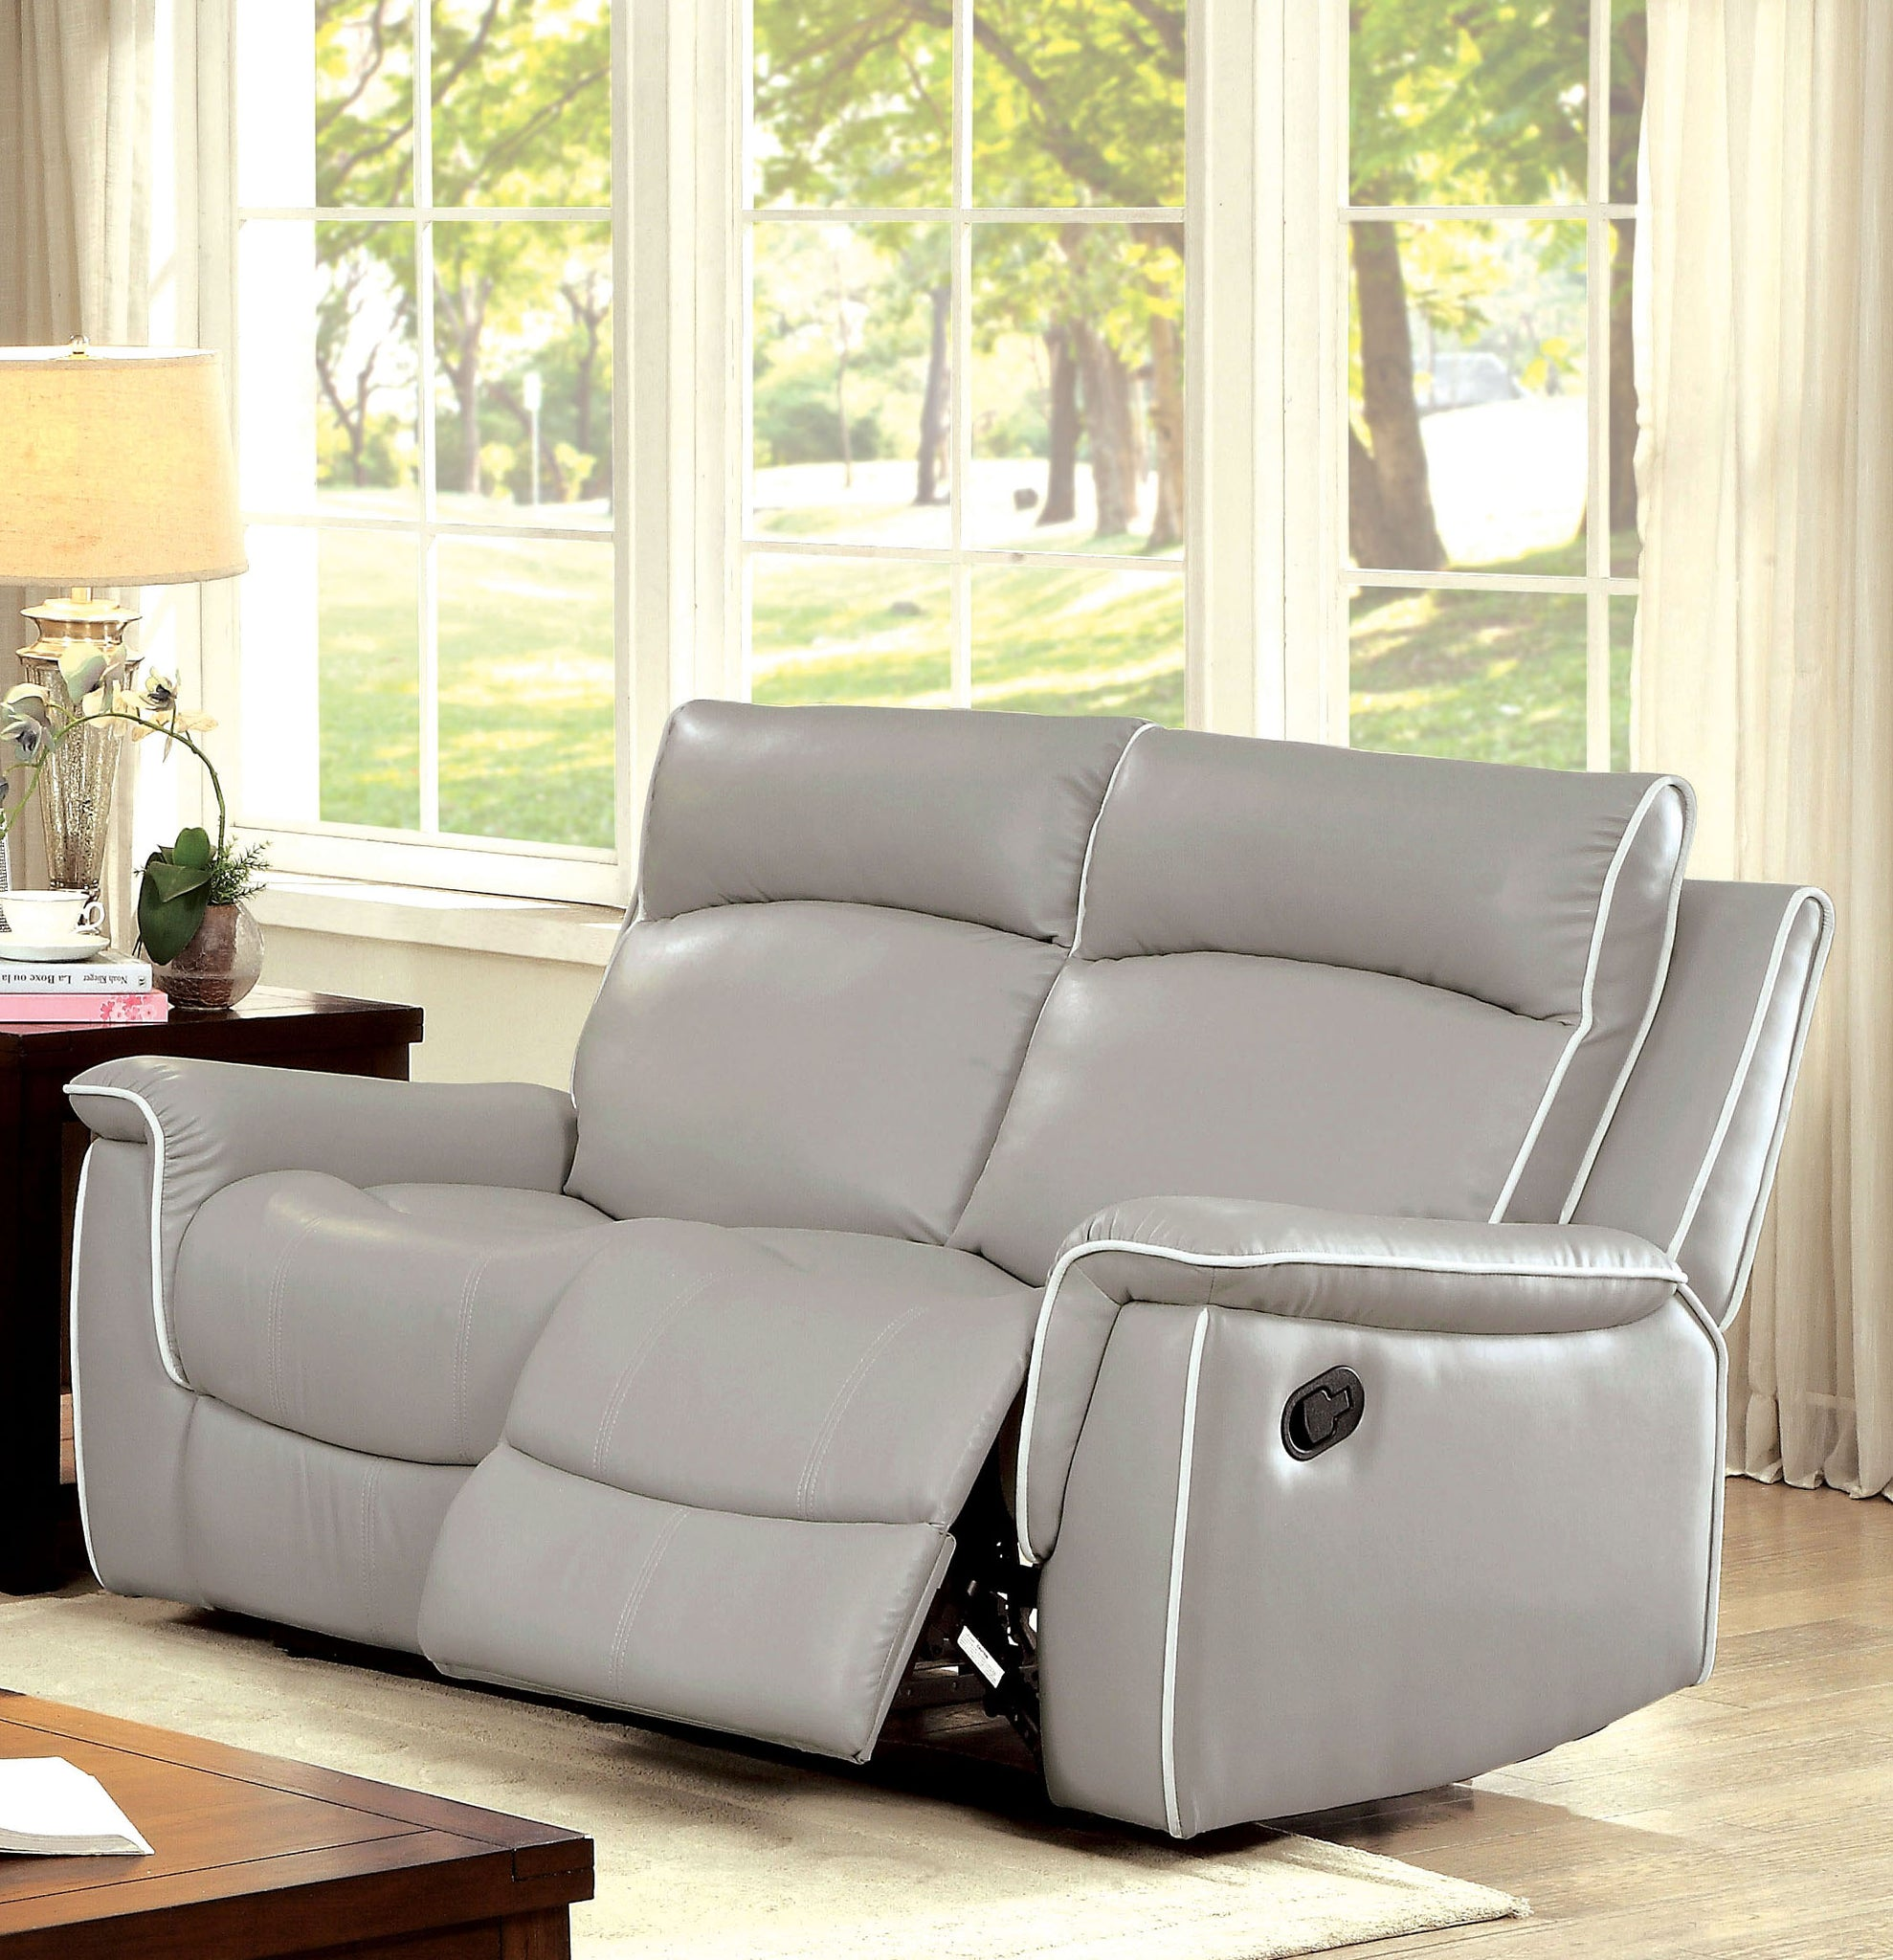 Nona Transitional Breathable Leather Loveseat Recliner, Brown